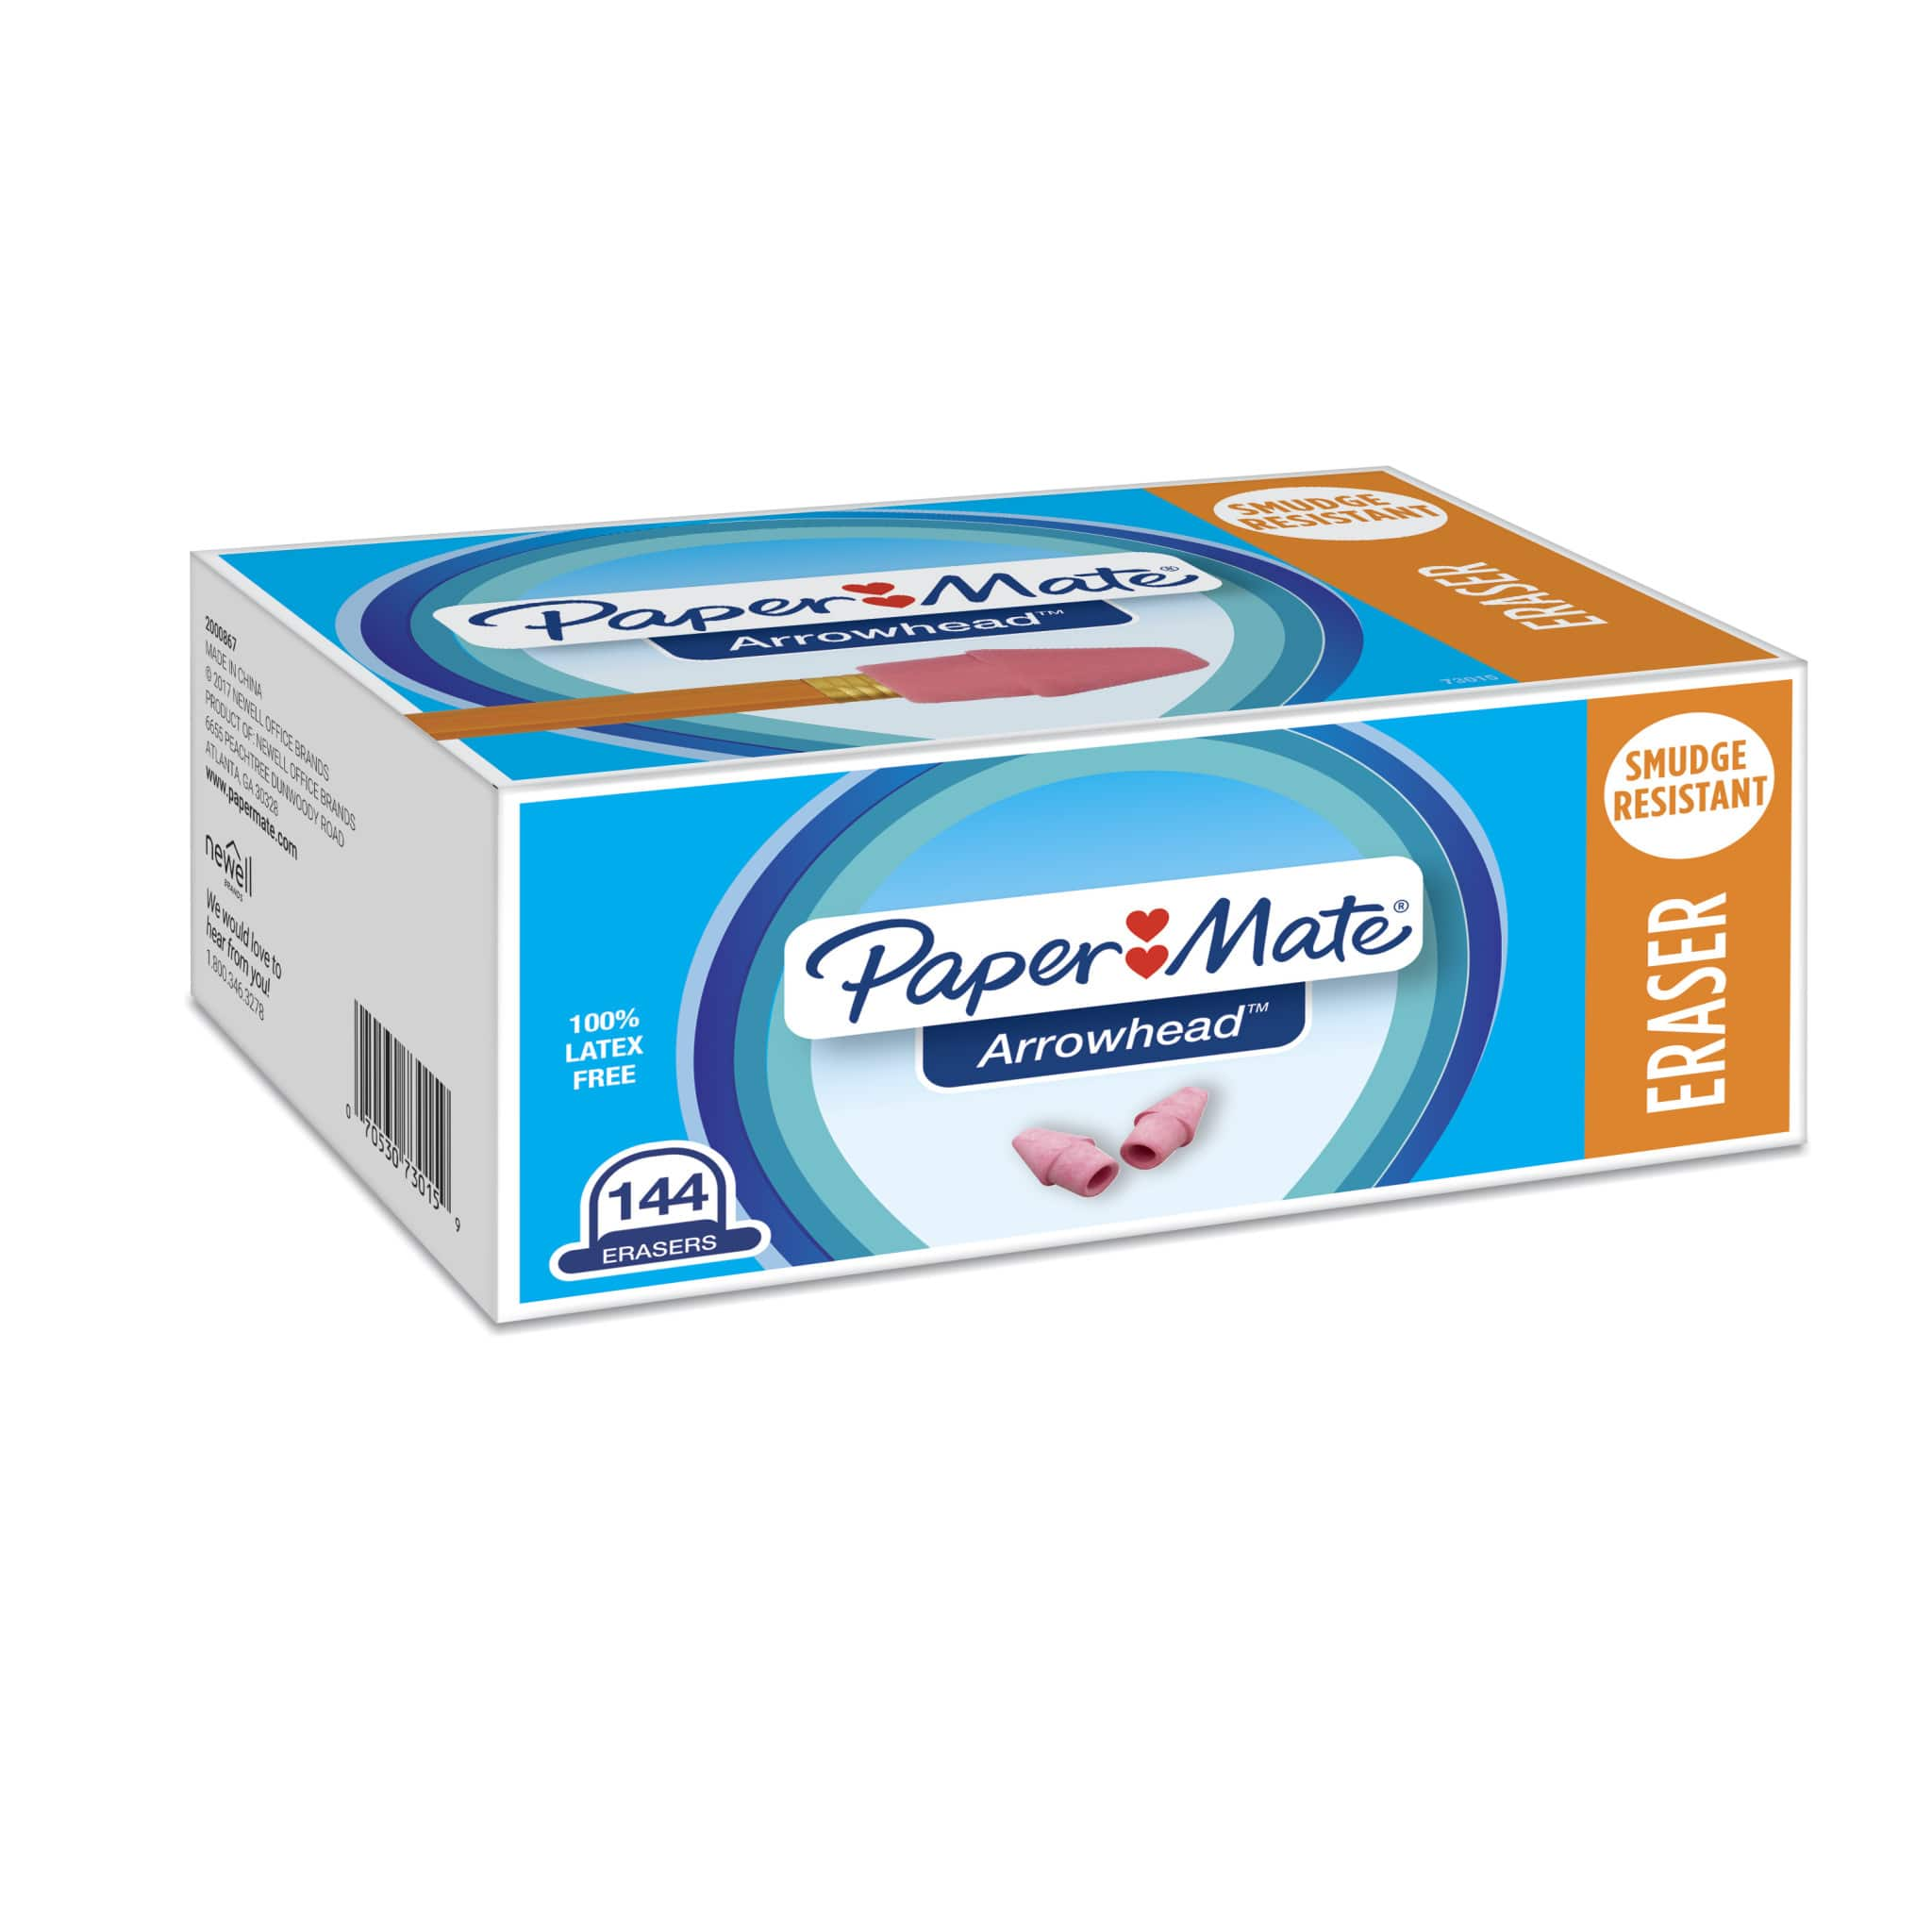 Paper Mate Pink Pencil Cap Erasers, 144 Count $2.70 + free shipping